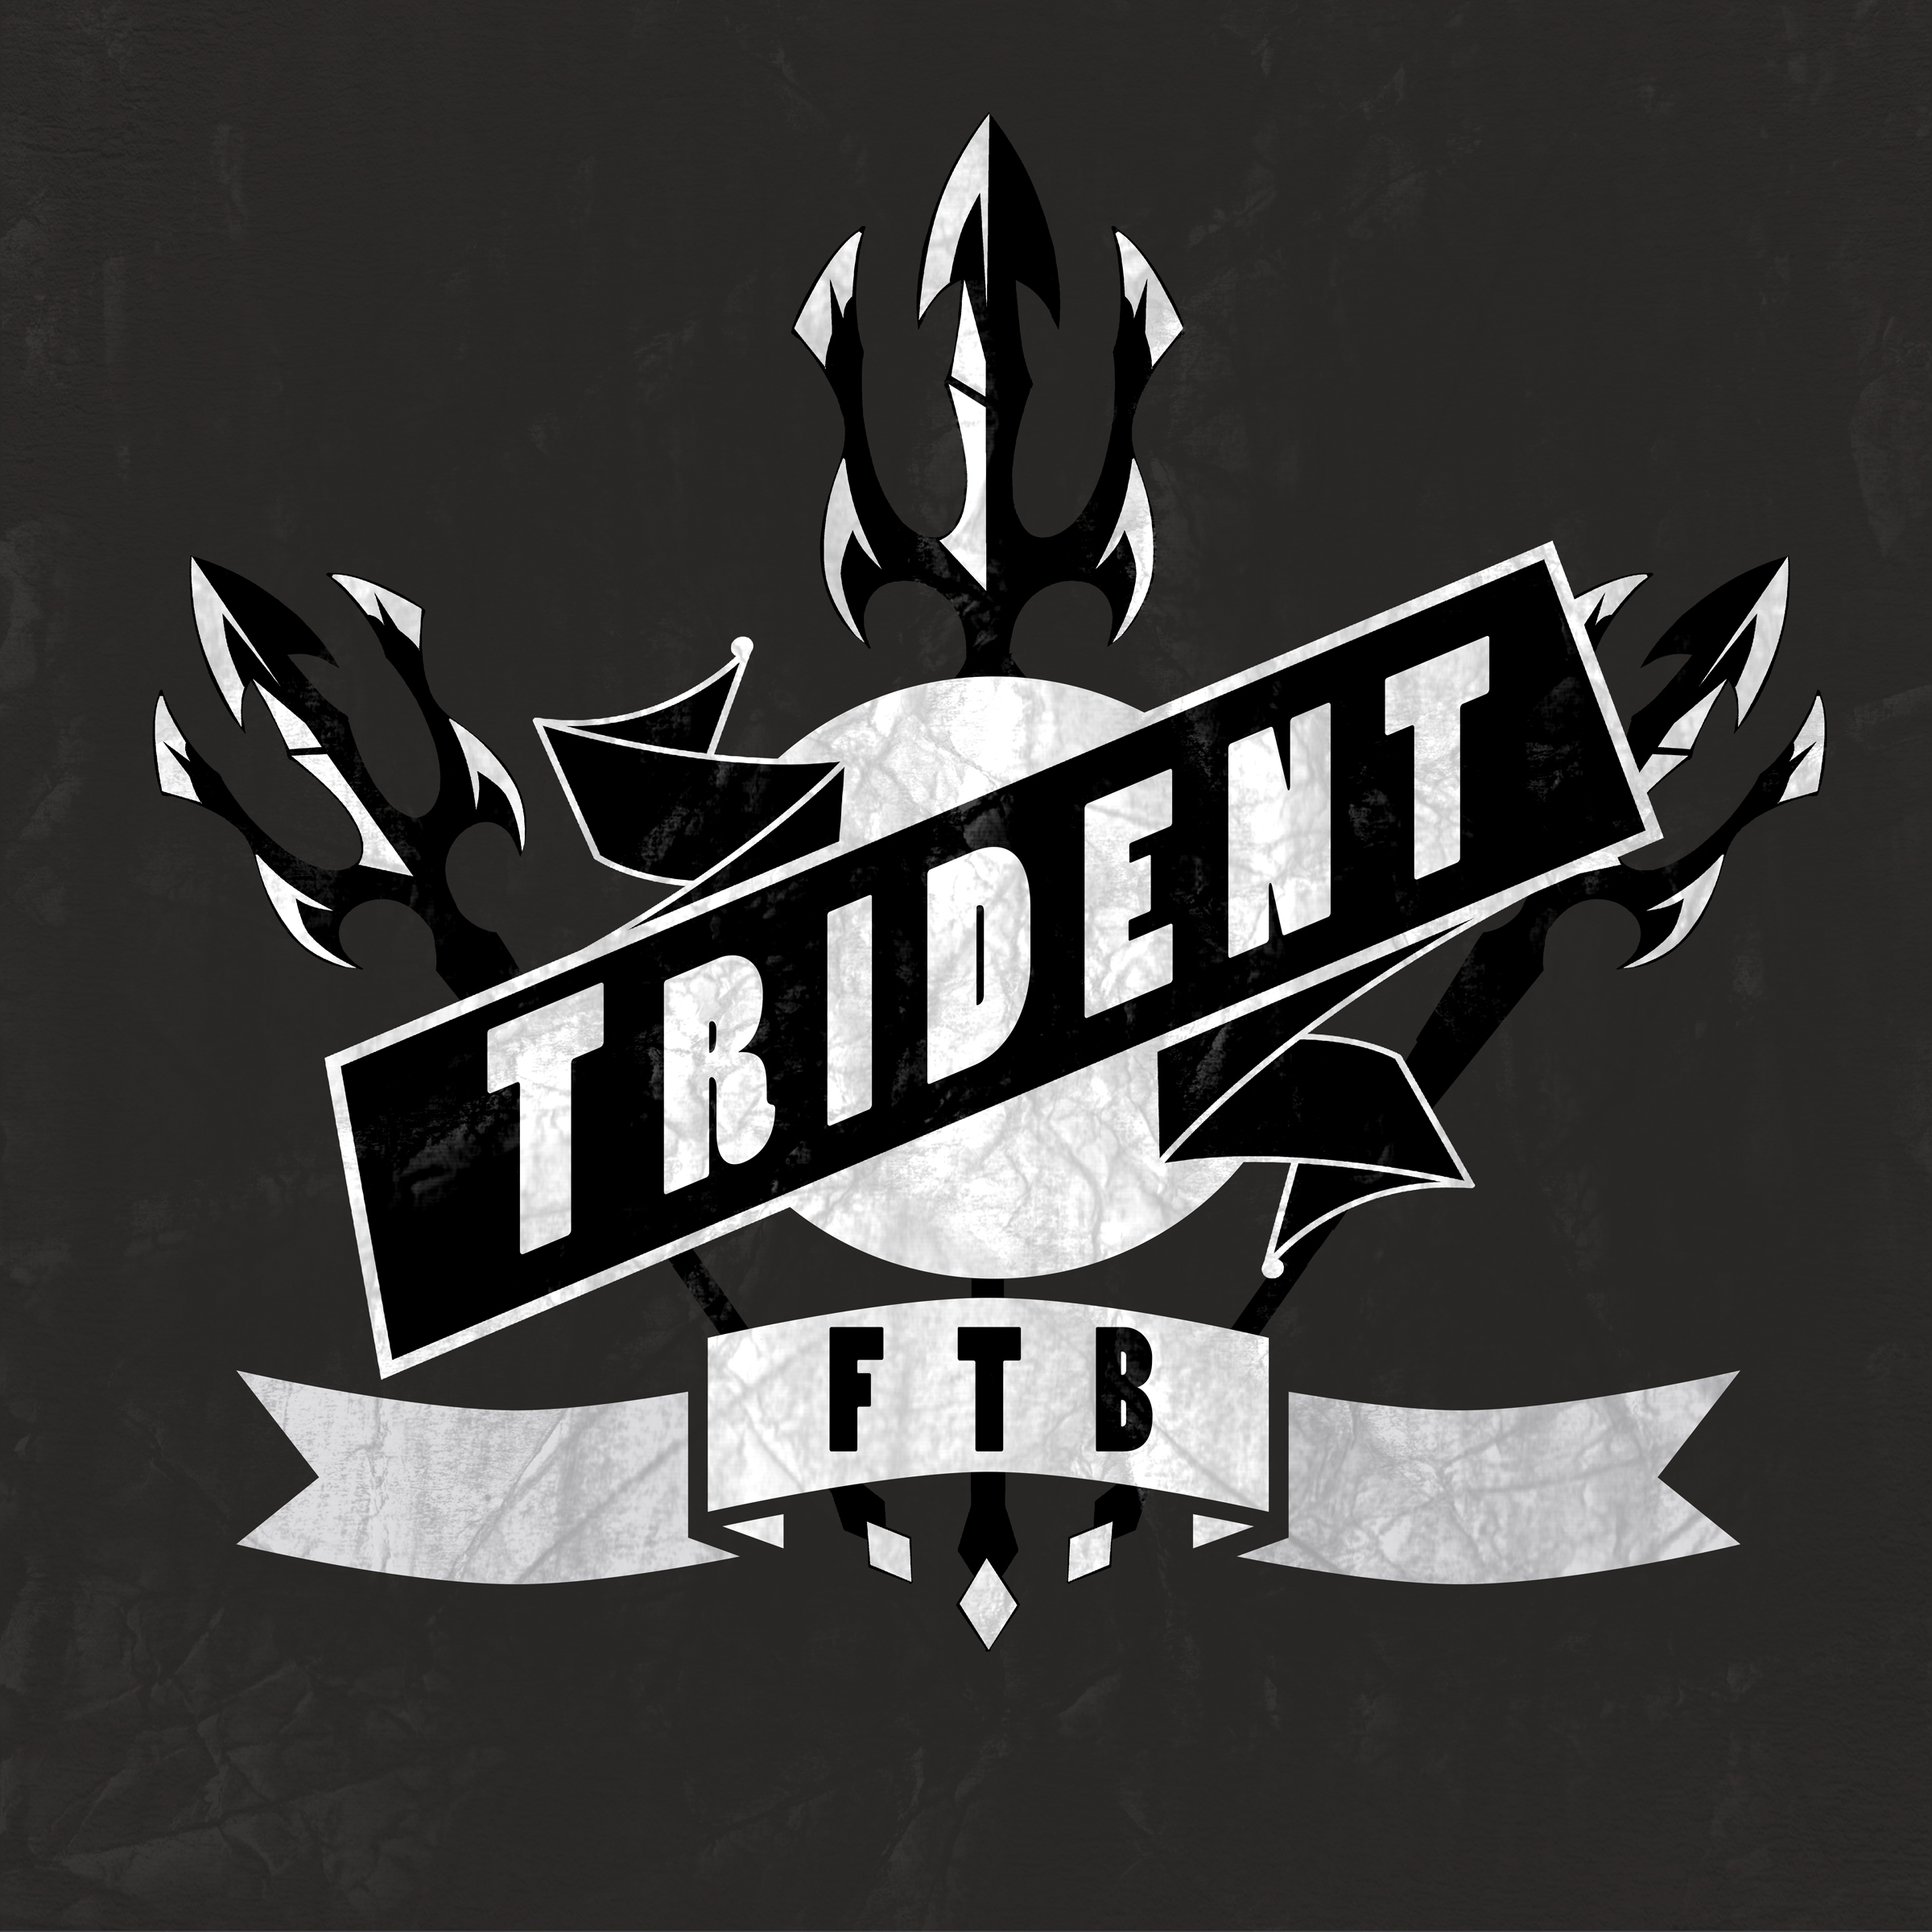 Start Your Own Minecraft FTB Trident Server